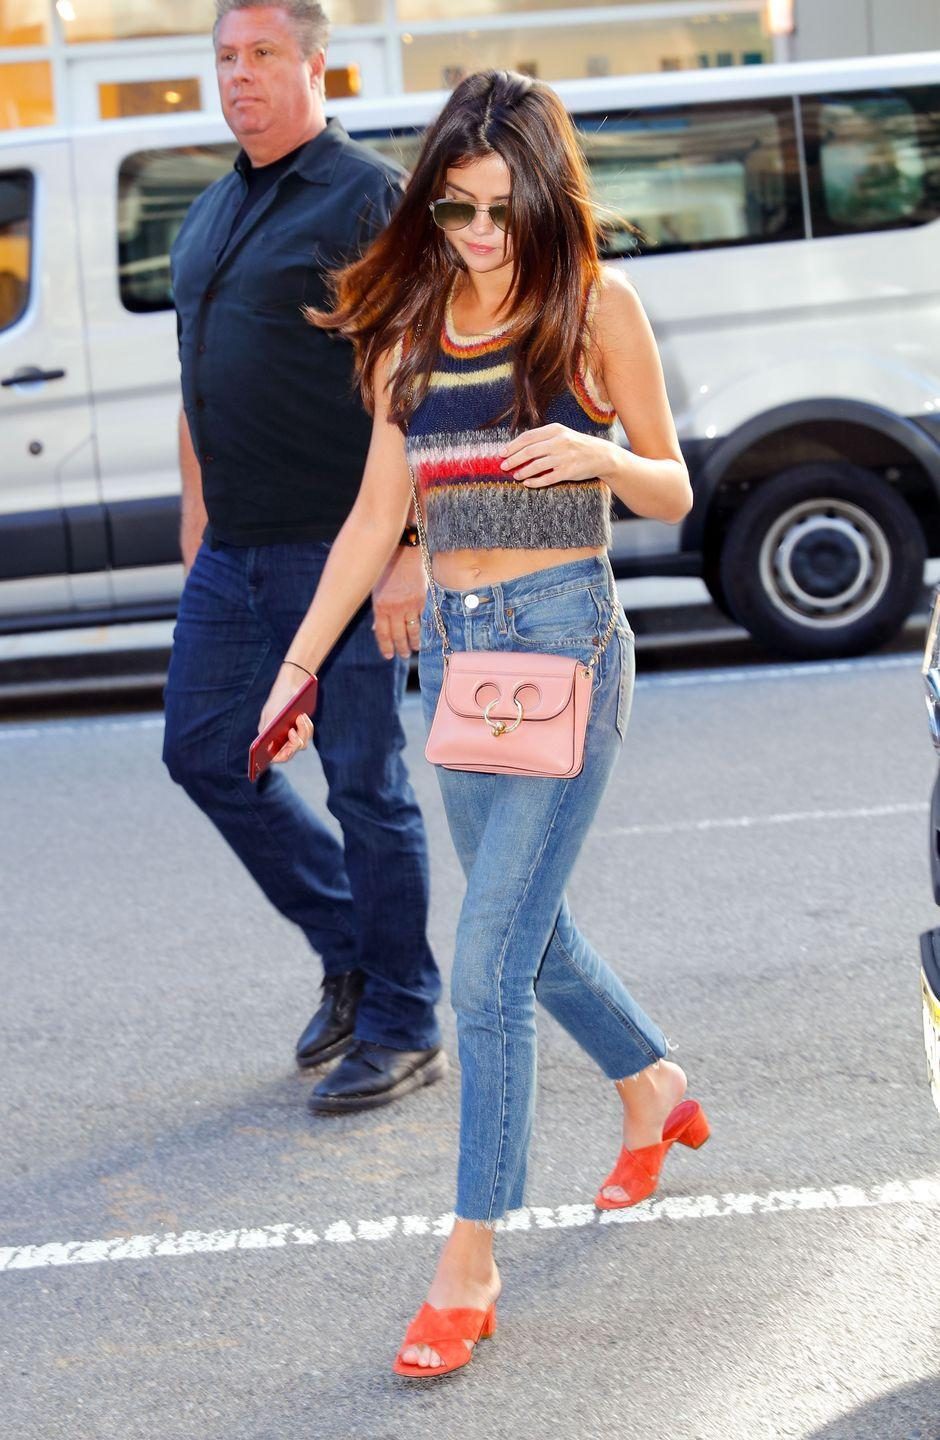 <p>The 24-year-old wore a tight pair of jeans, paired with a fuzzy, striped crop top, and orange sandals for an outing with friends in New York, June 2017. </p>